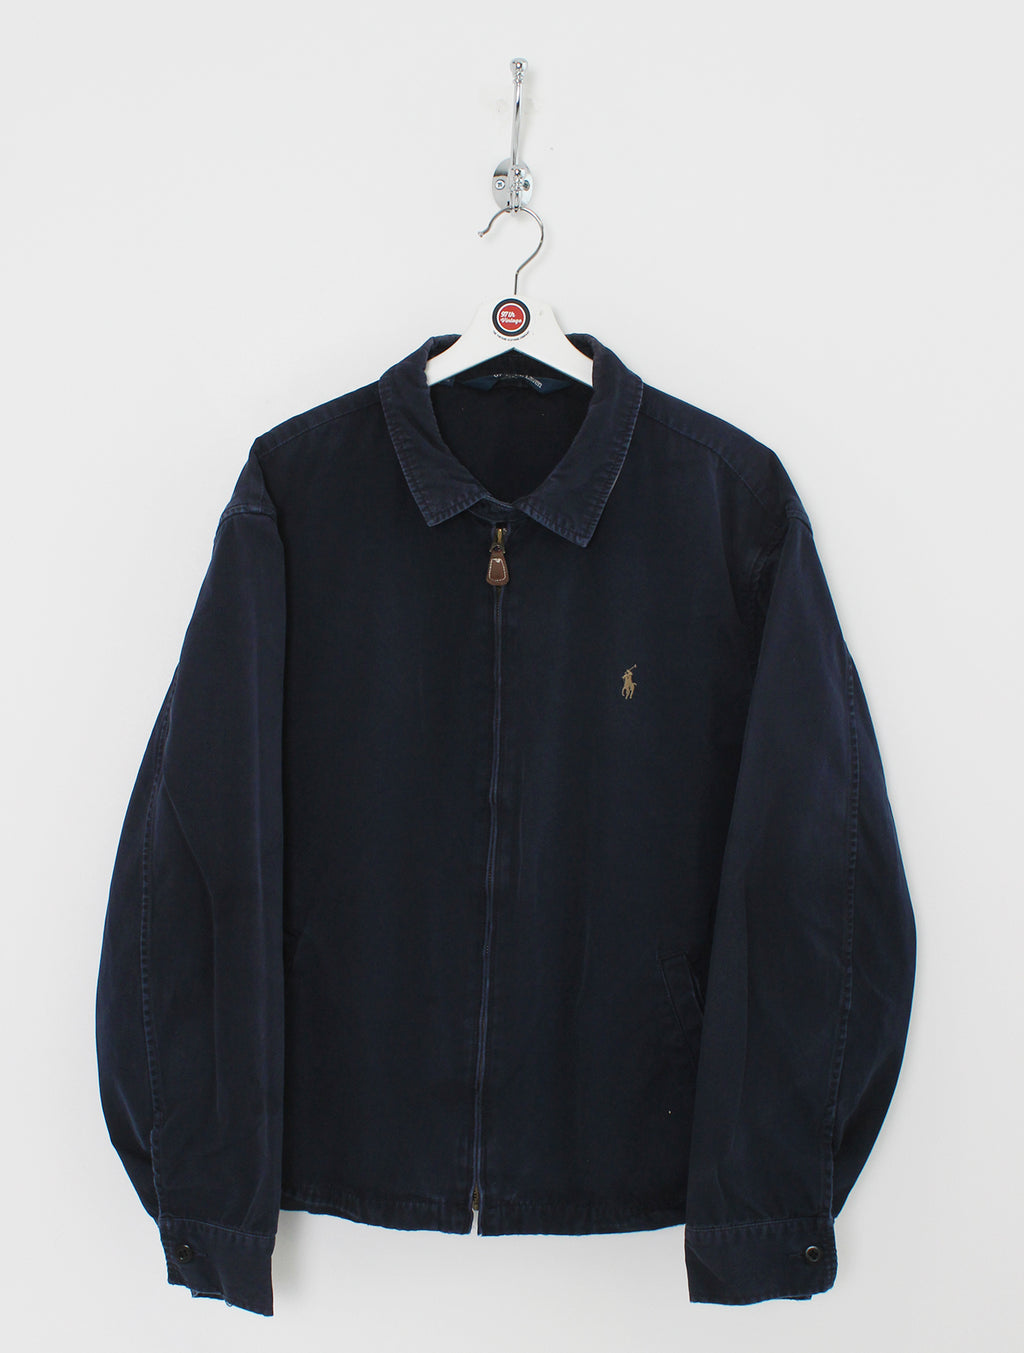 Ralph Lauren Jacket (XL)